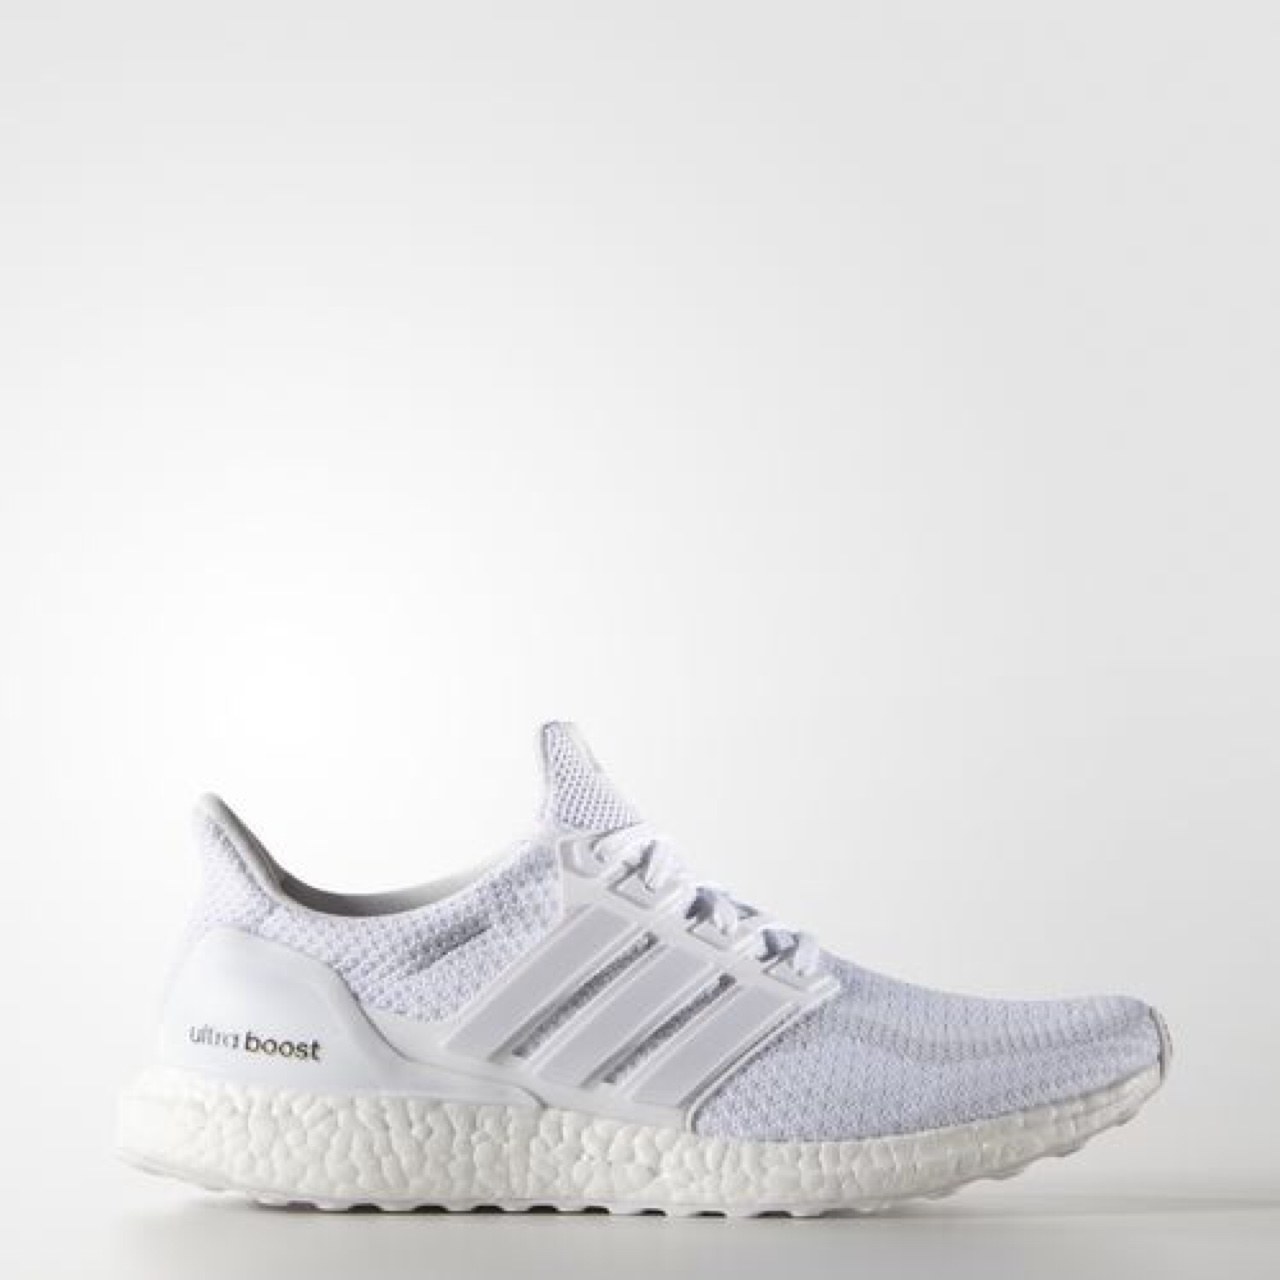 quality products super popular affordable price Adidas Ultra Boost triple white 2.0 UK 9.5 US 10-... - Depop